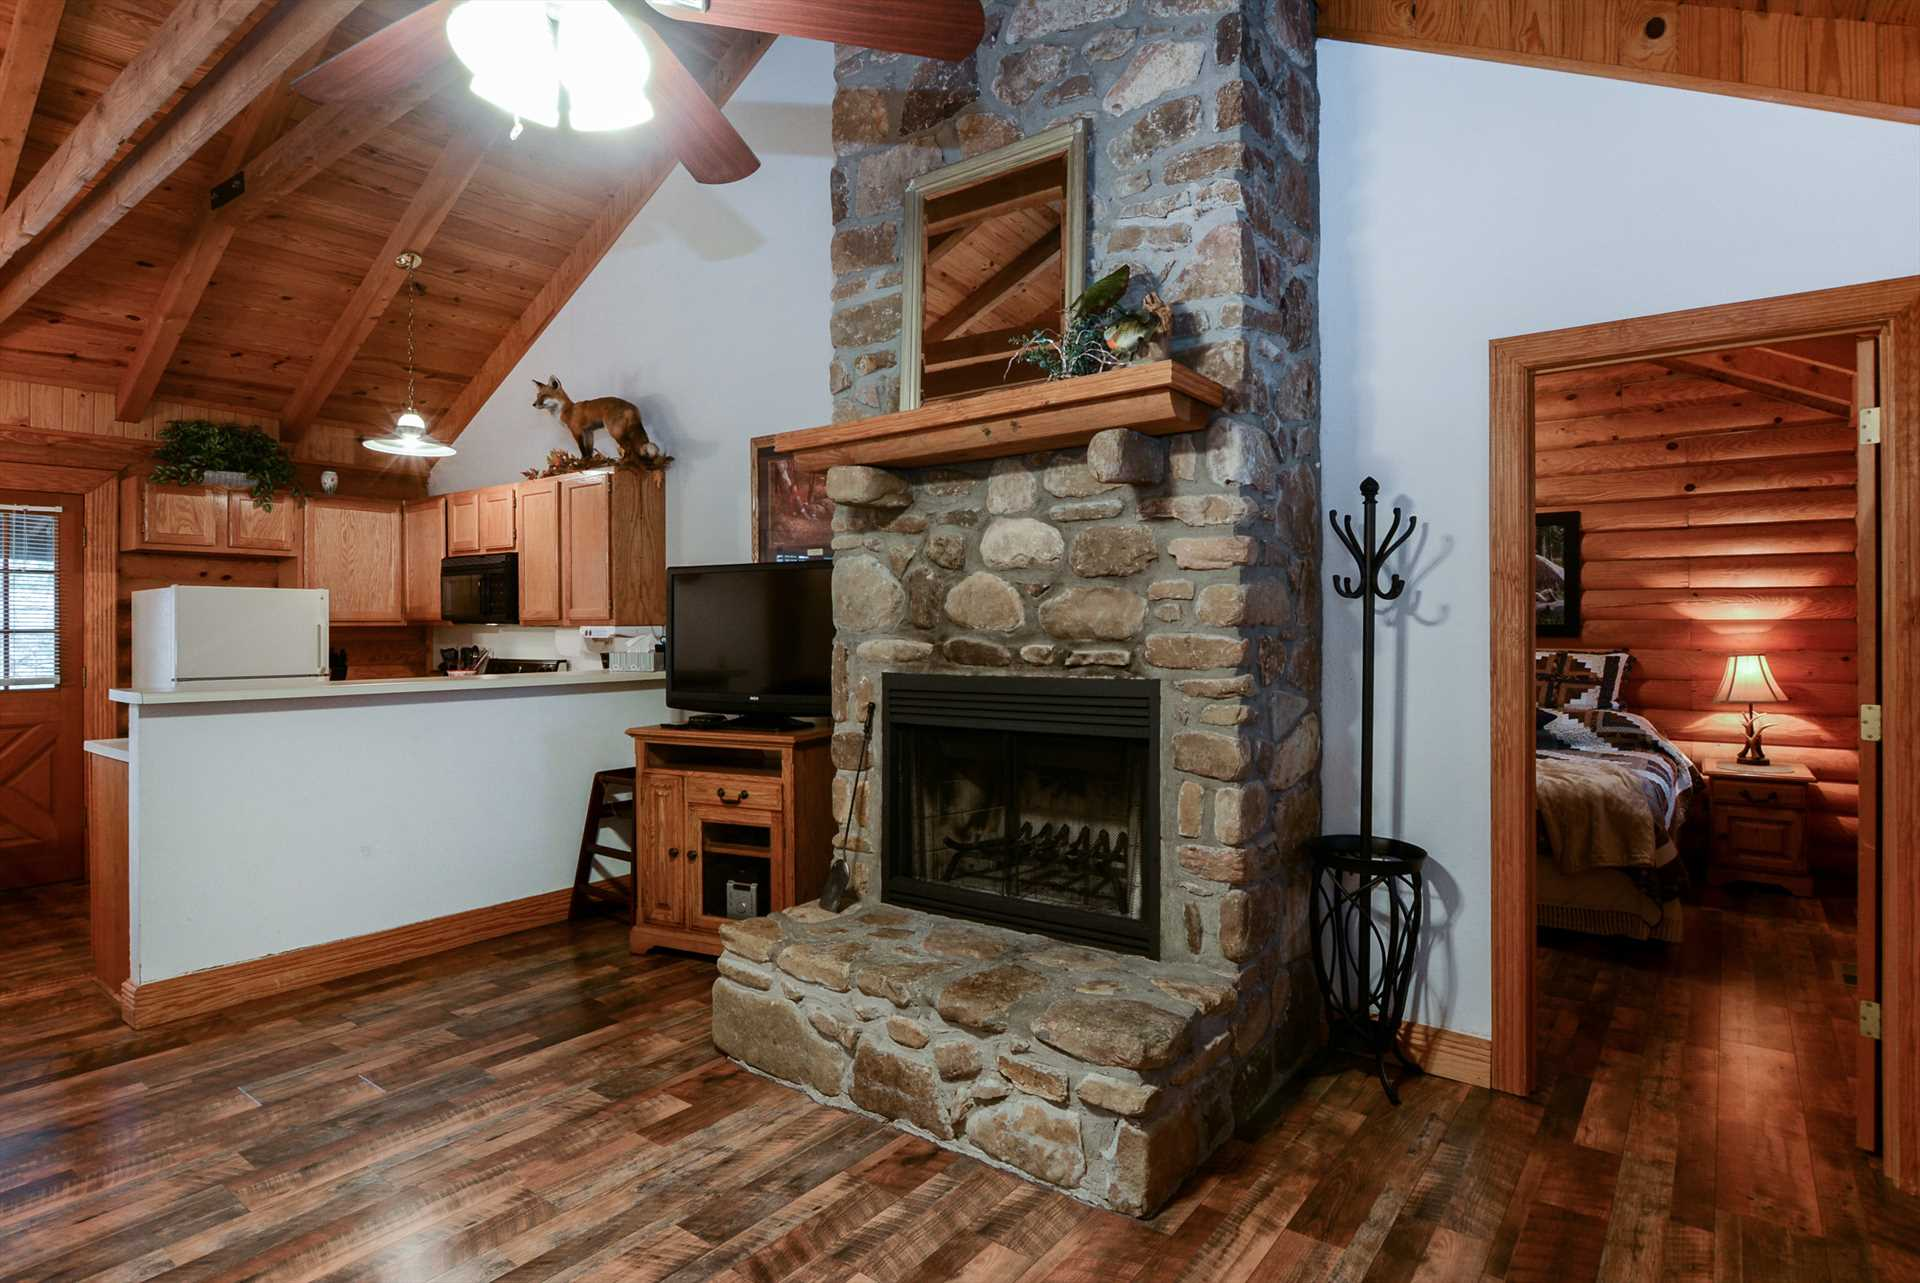 The stone fireplace is the centerpiece of the living area.